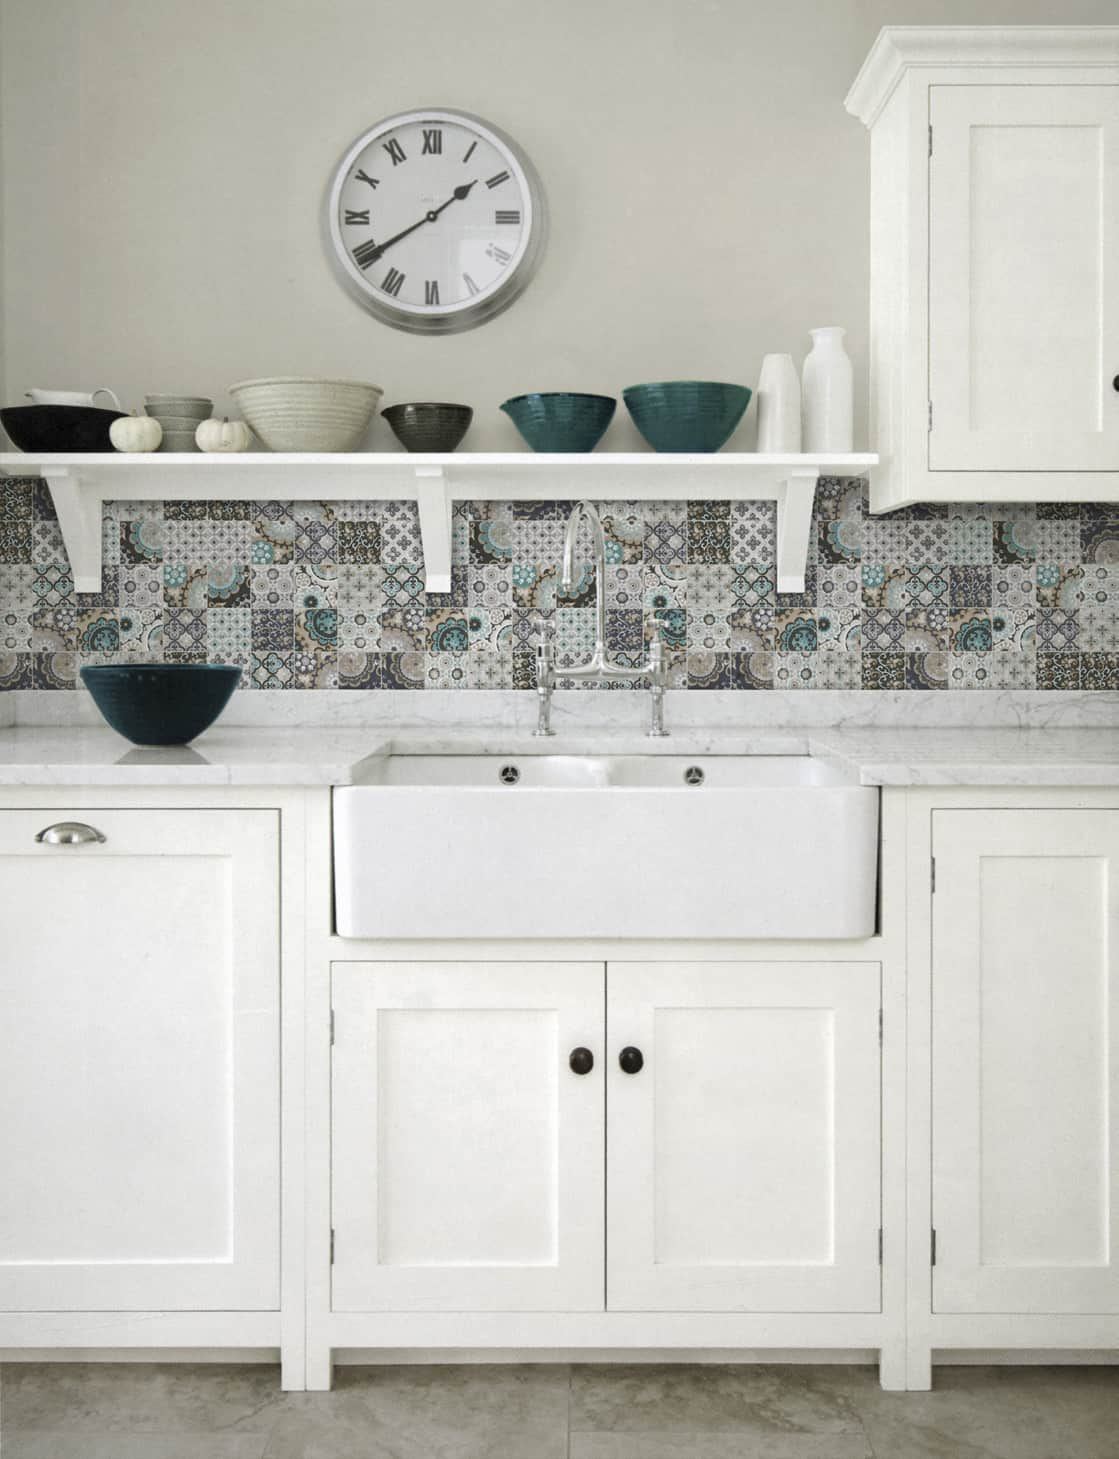 Patchwork Backsplash For Country Style Kitchen Ideas Homestead - Country kitchen tiles